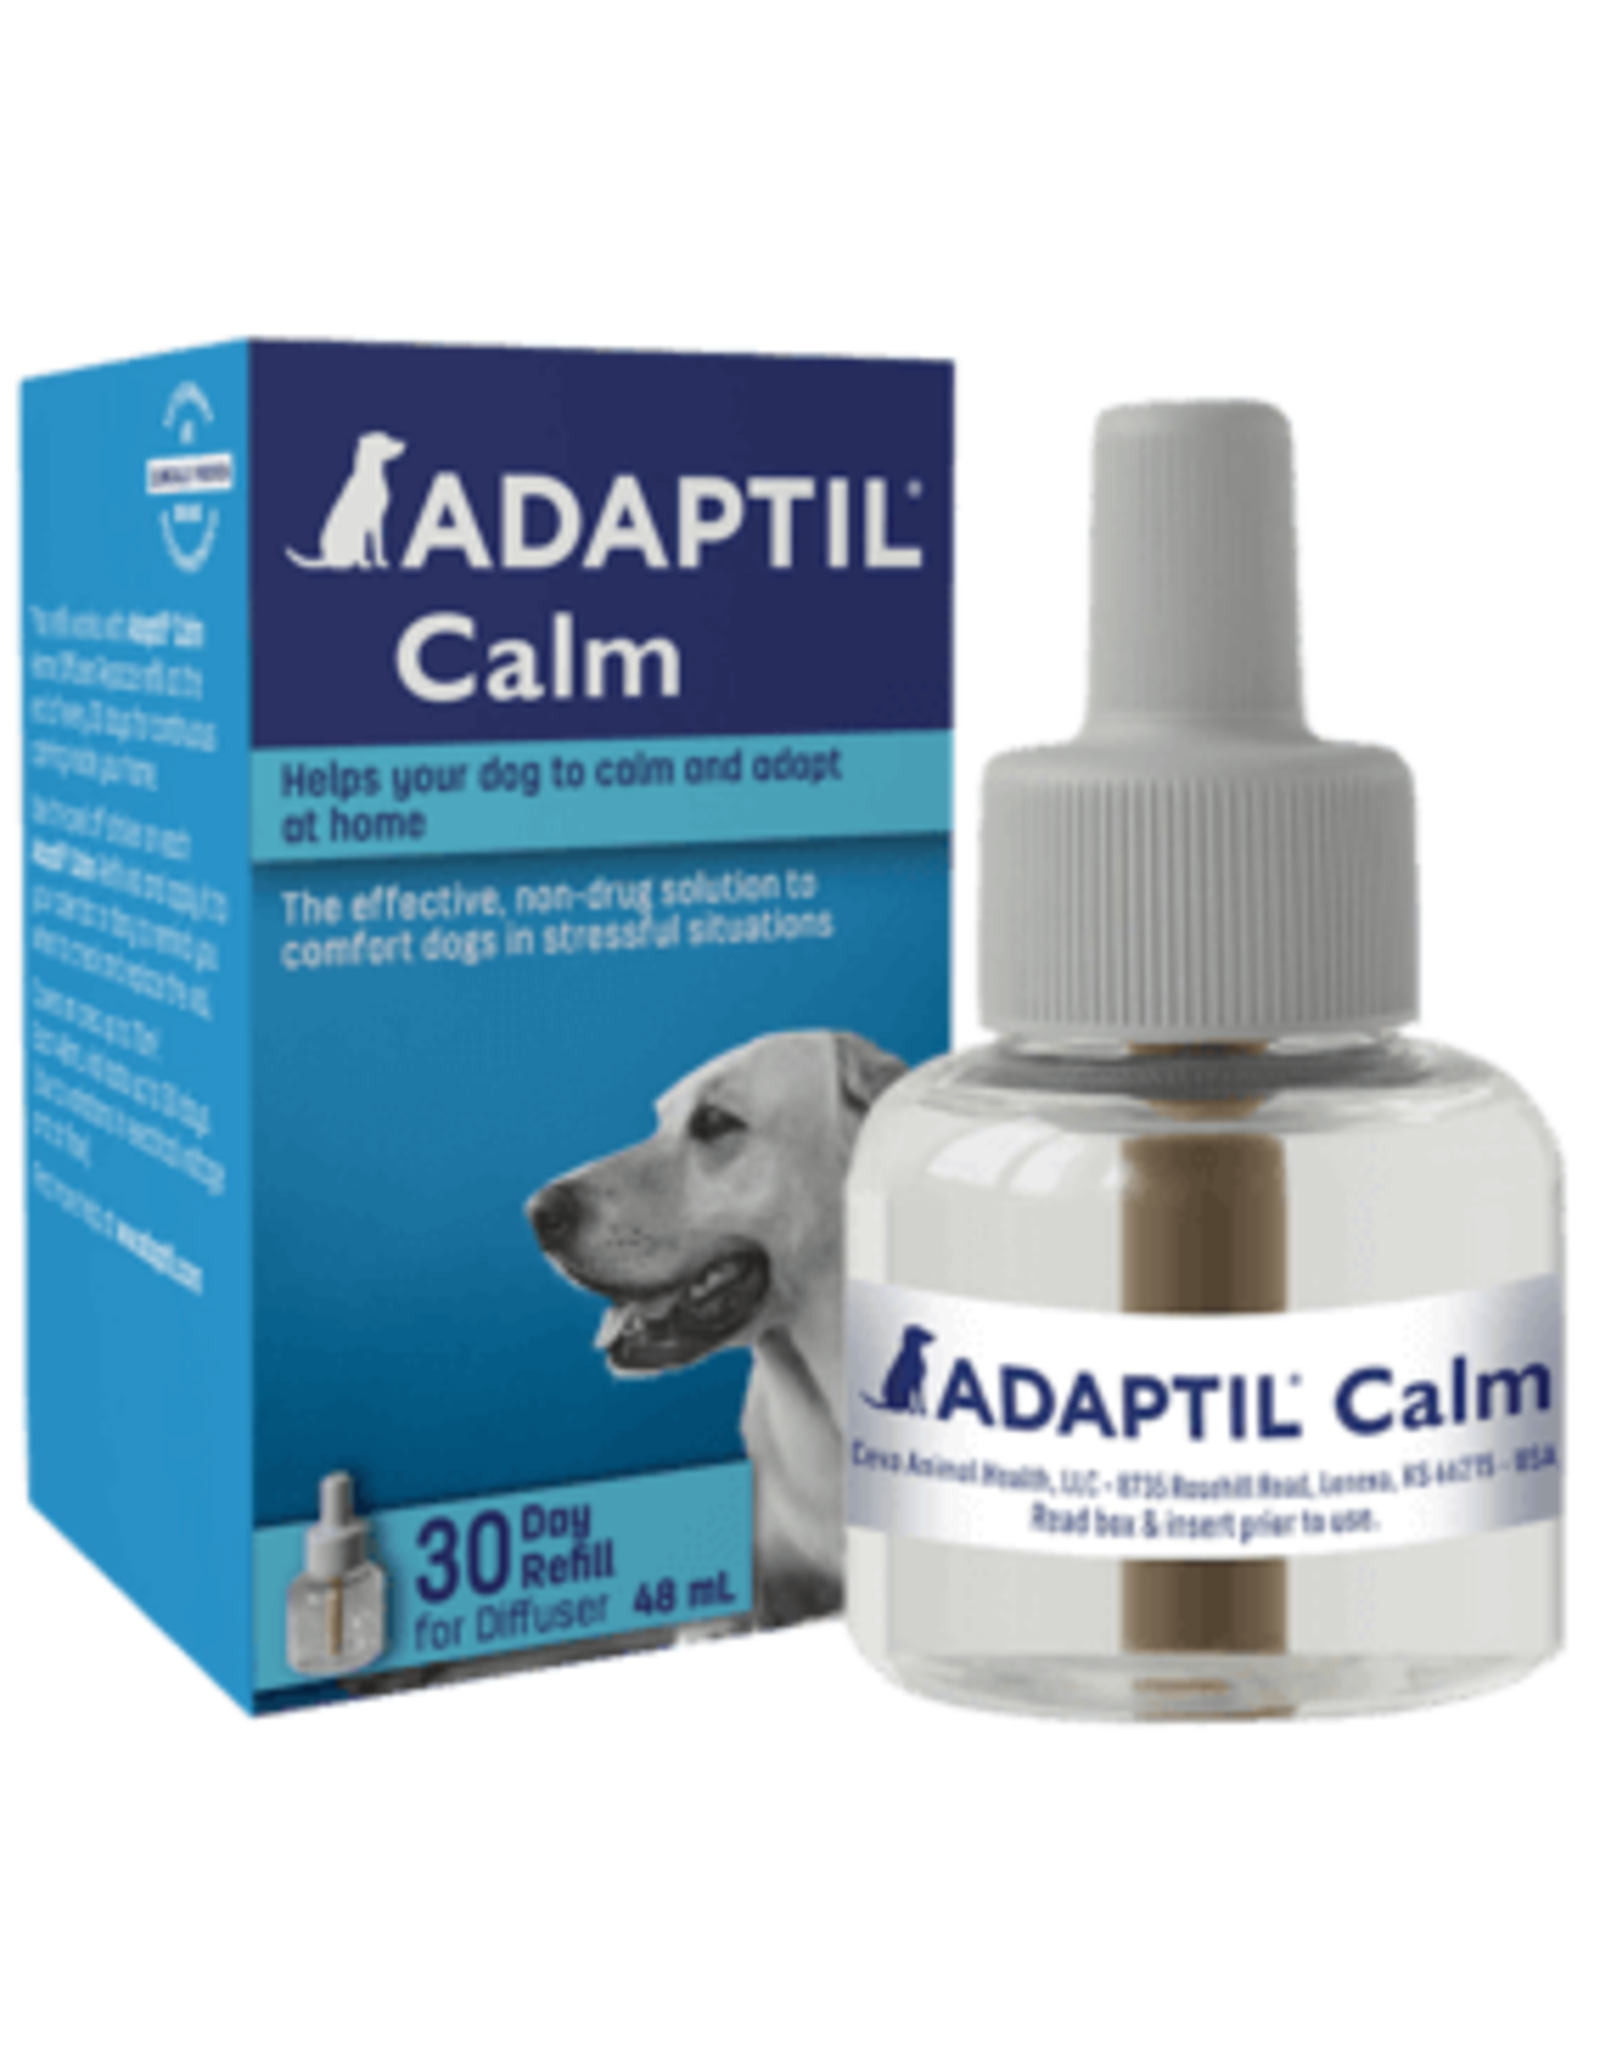 Adaptil DAP Calm Dog Pheromone Refill